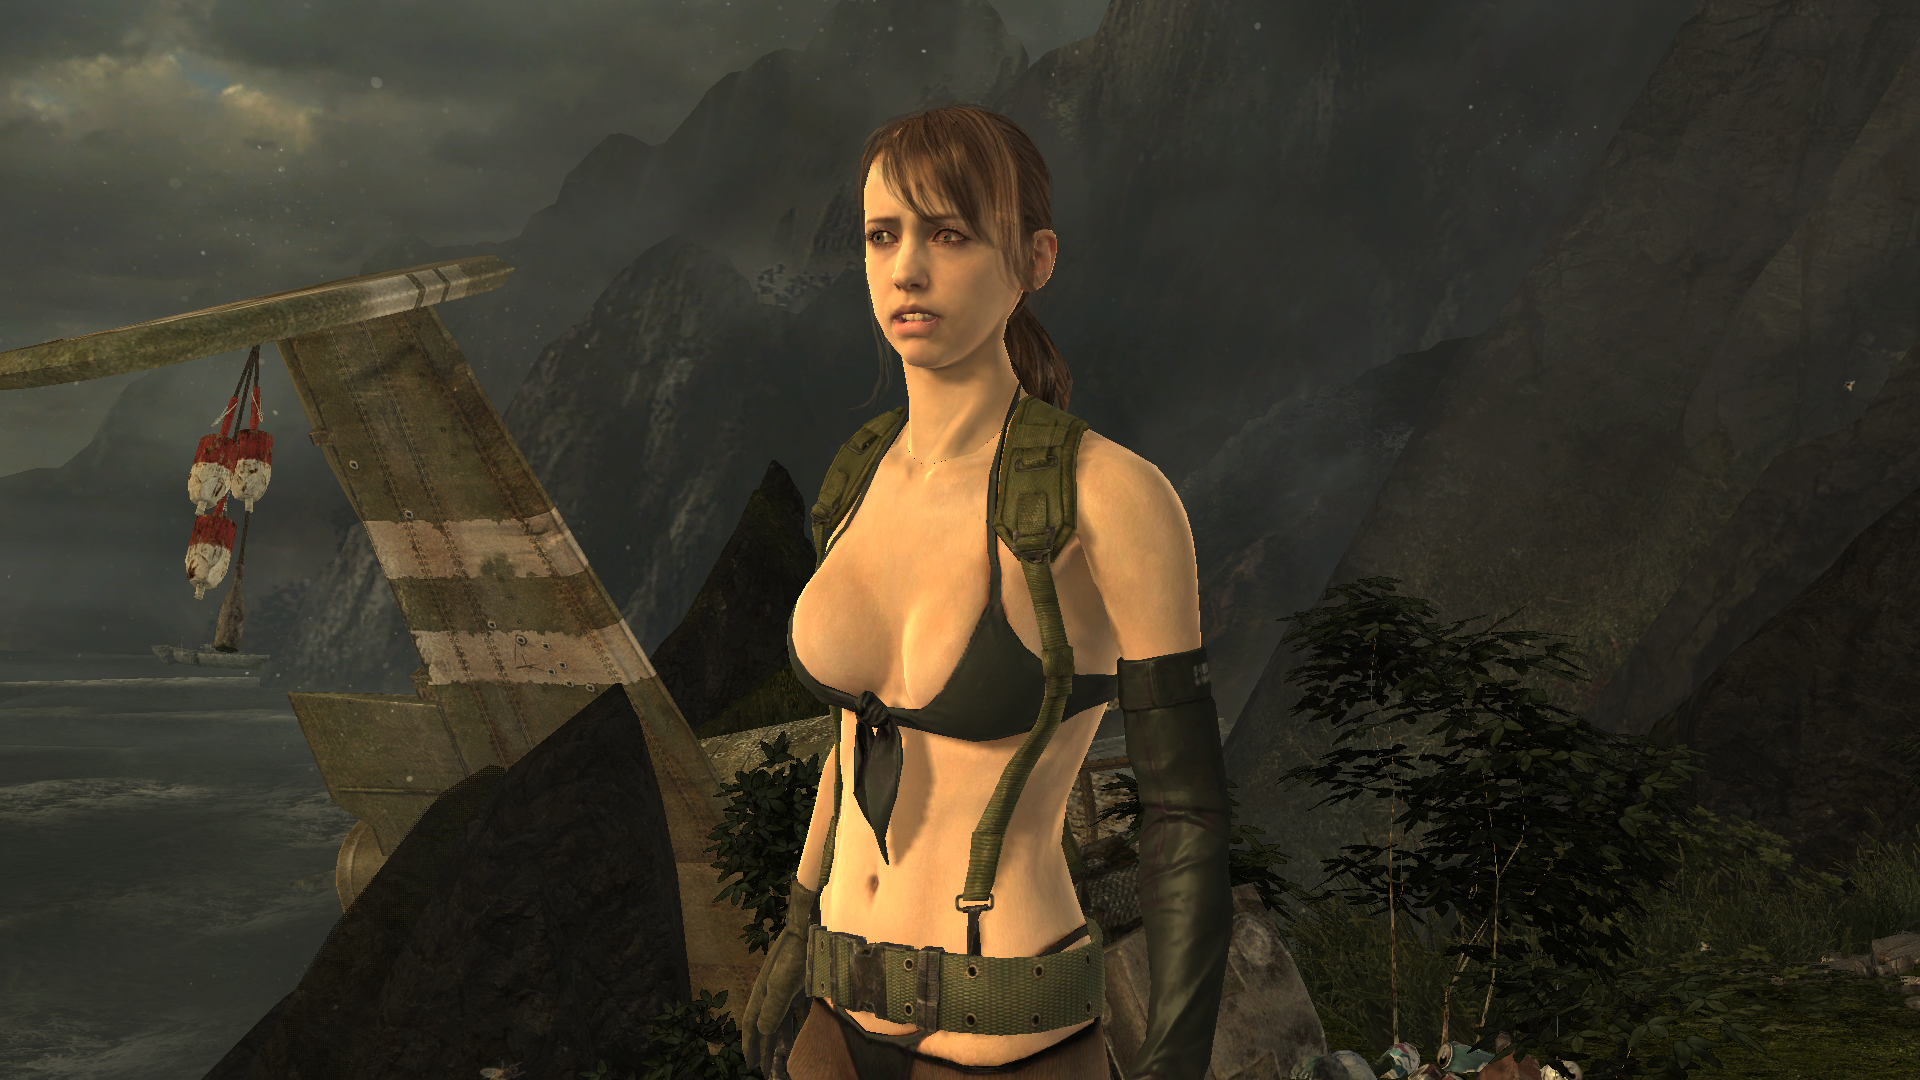 Tomb Raider 2013 PC Tweaks Guide - Graphics and Improve